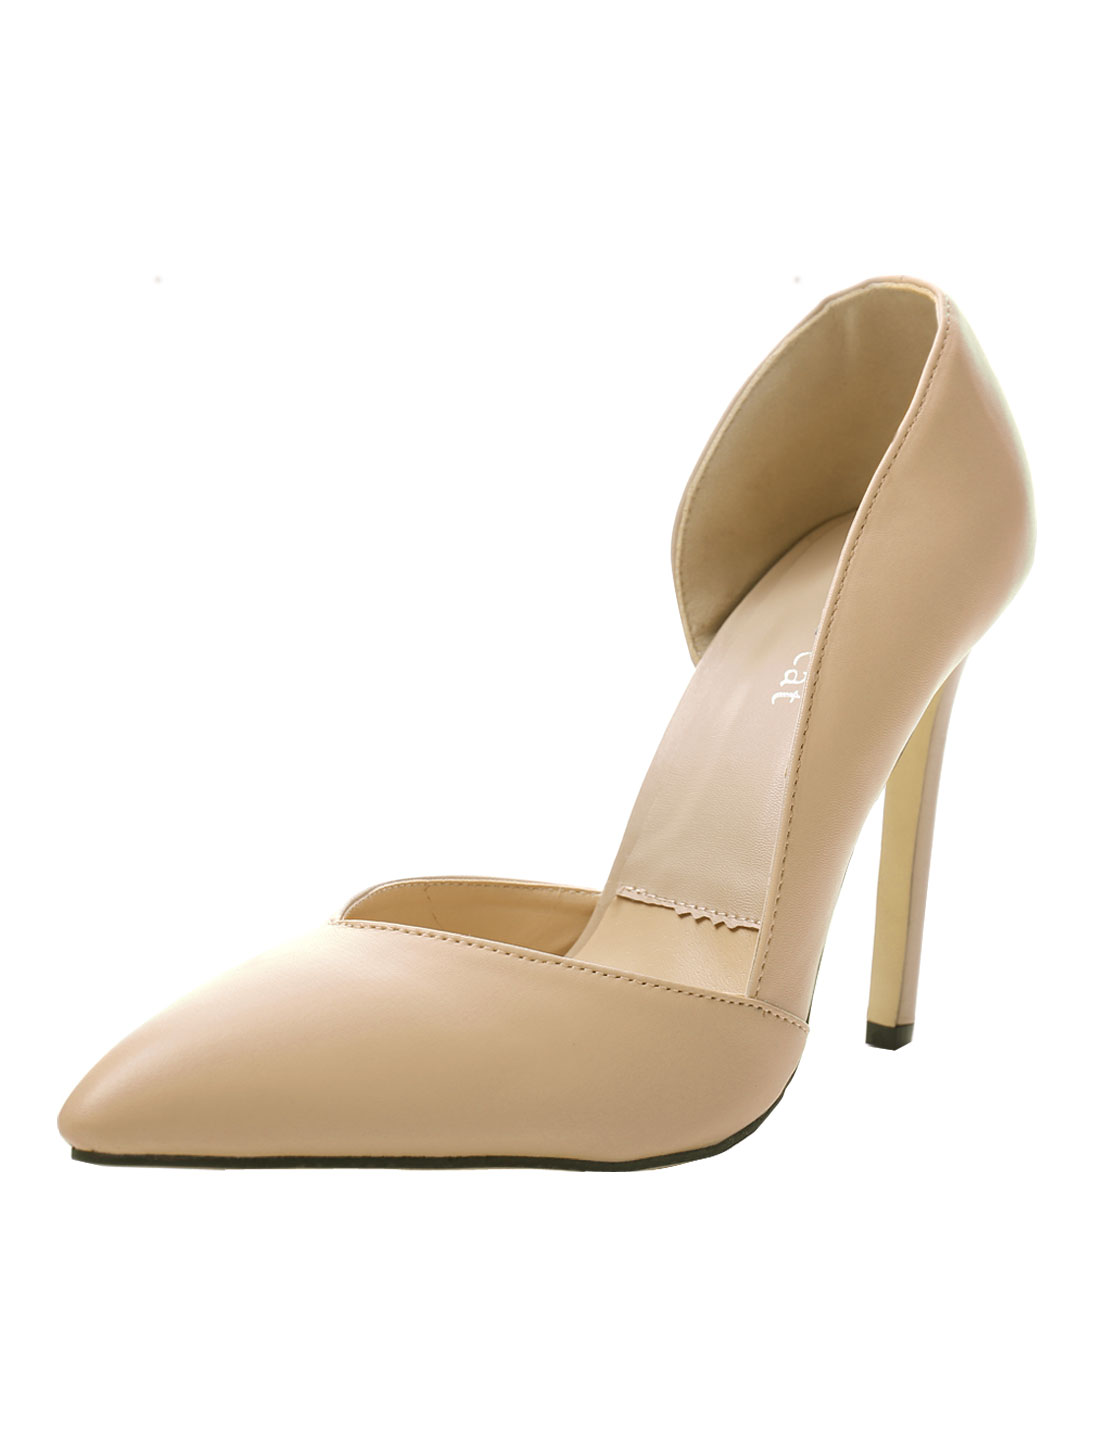 Woman Side Cutout Pointed Toe Party High Heels Beige US 8.5